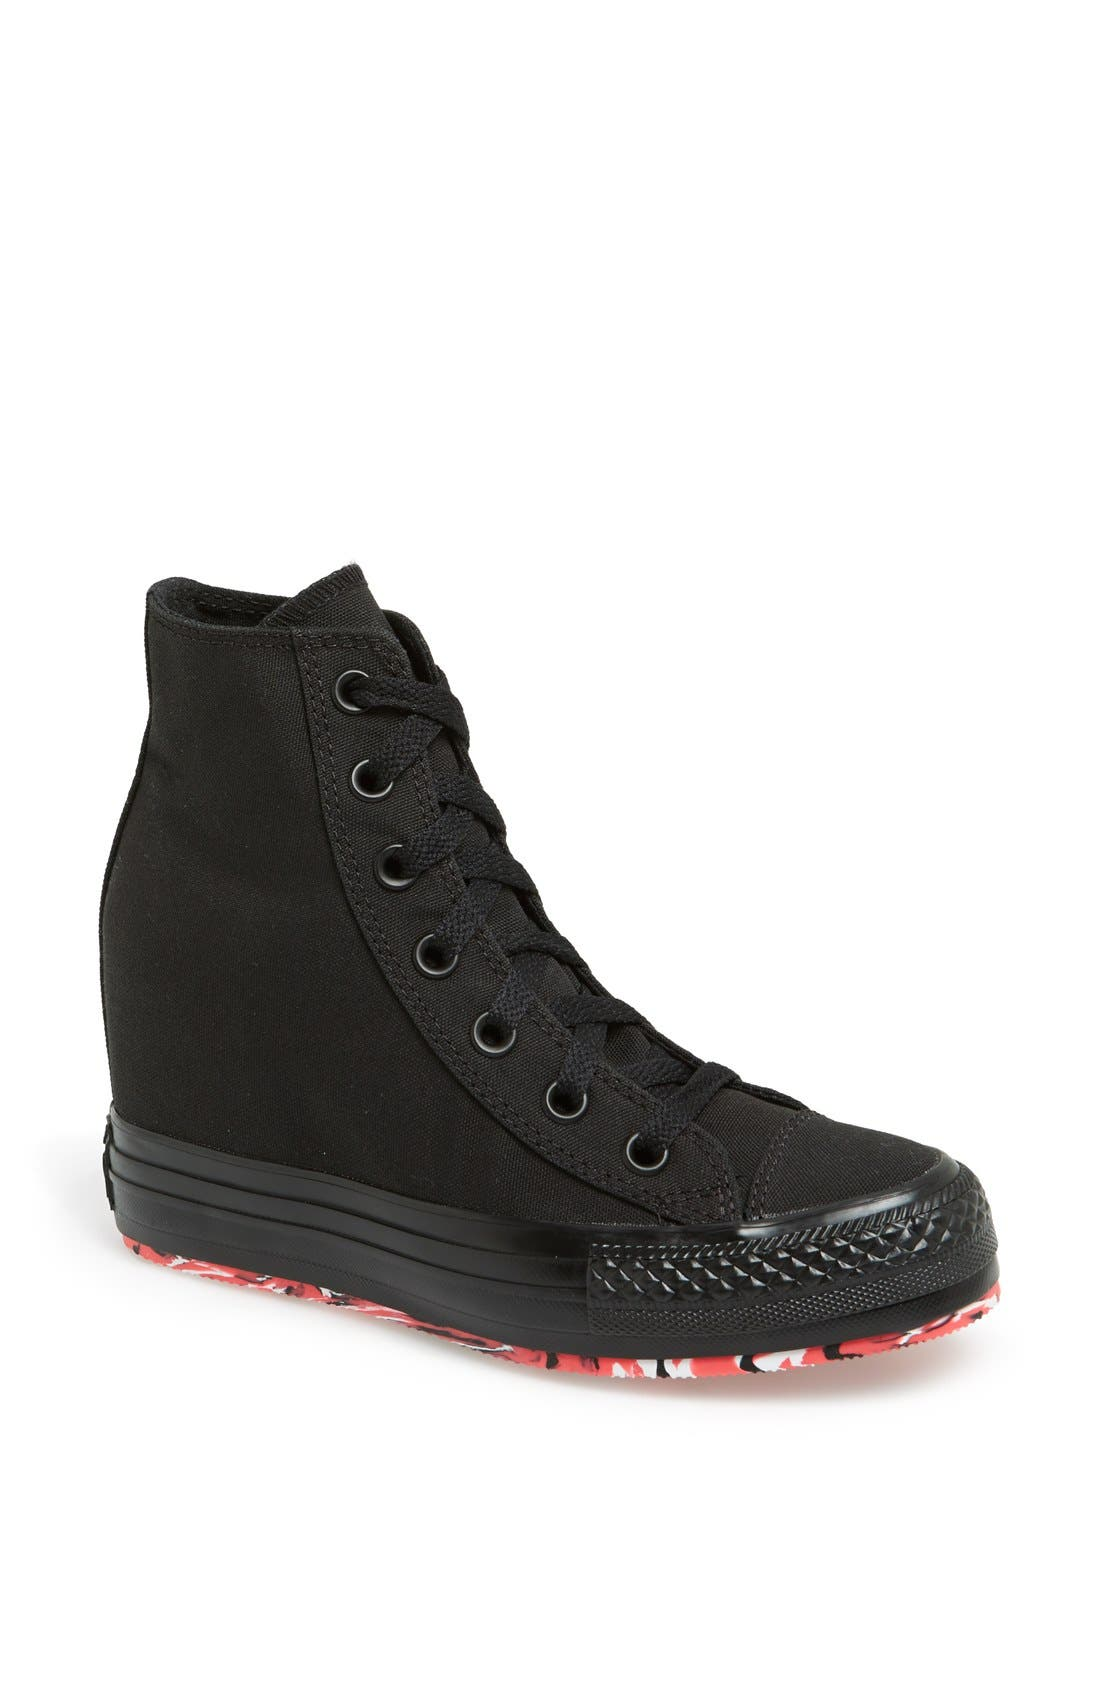 Alternate Image 1 Selected - Converse Chuck Taylor® All Star® High Top Wedge Sneaker (Women)